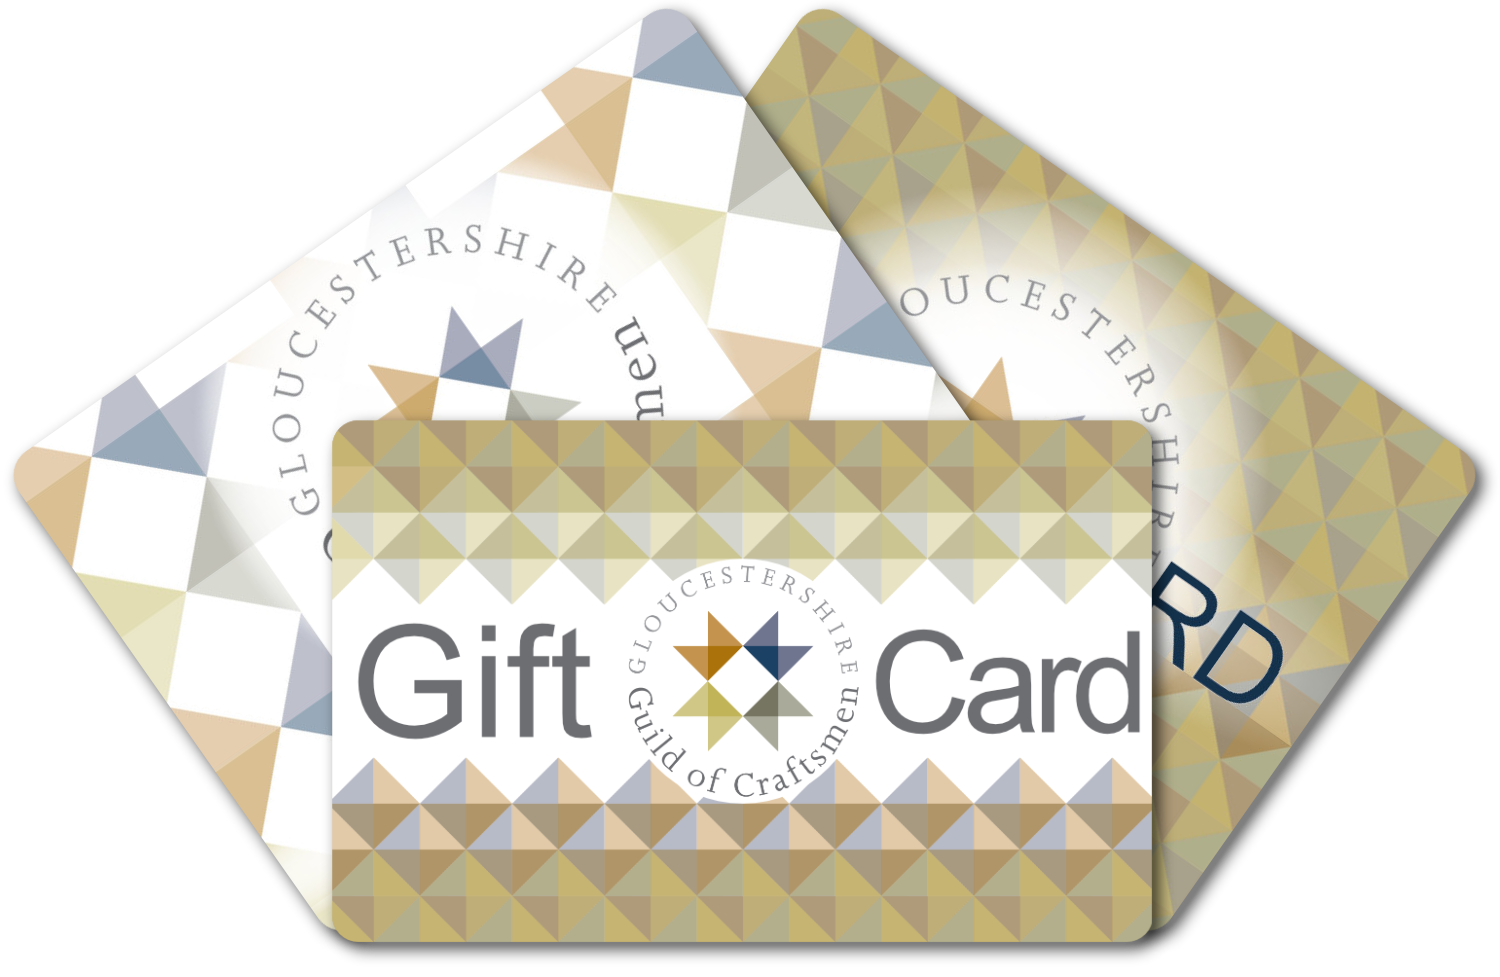 Guild-Gift-Card-Fan-01